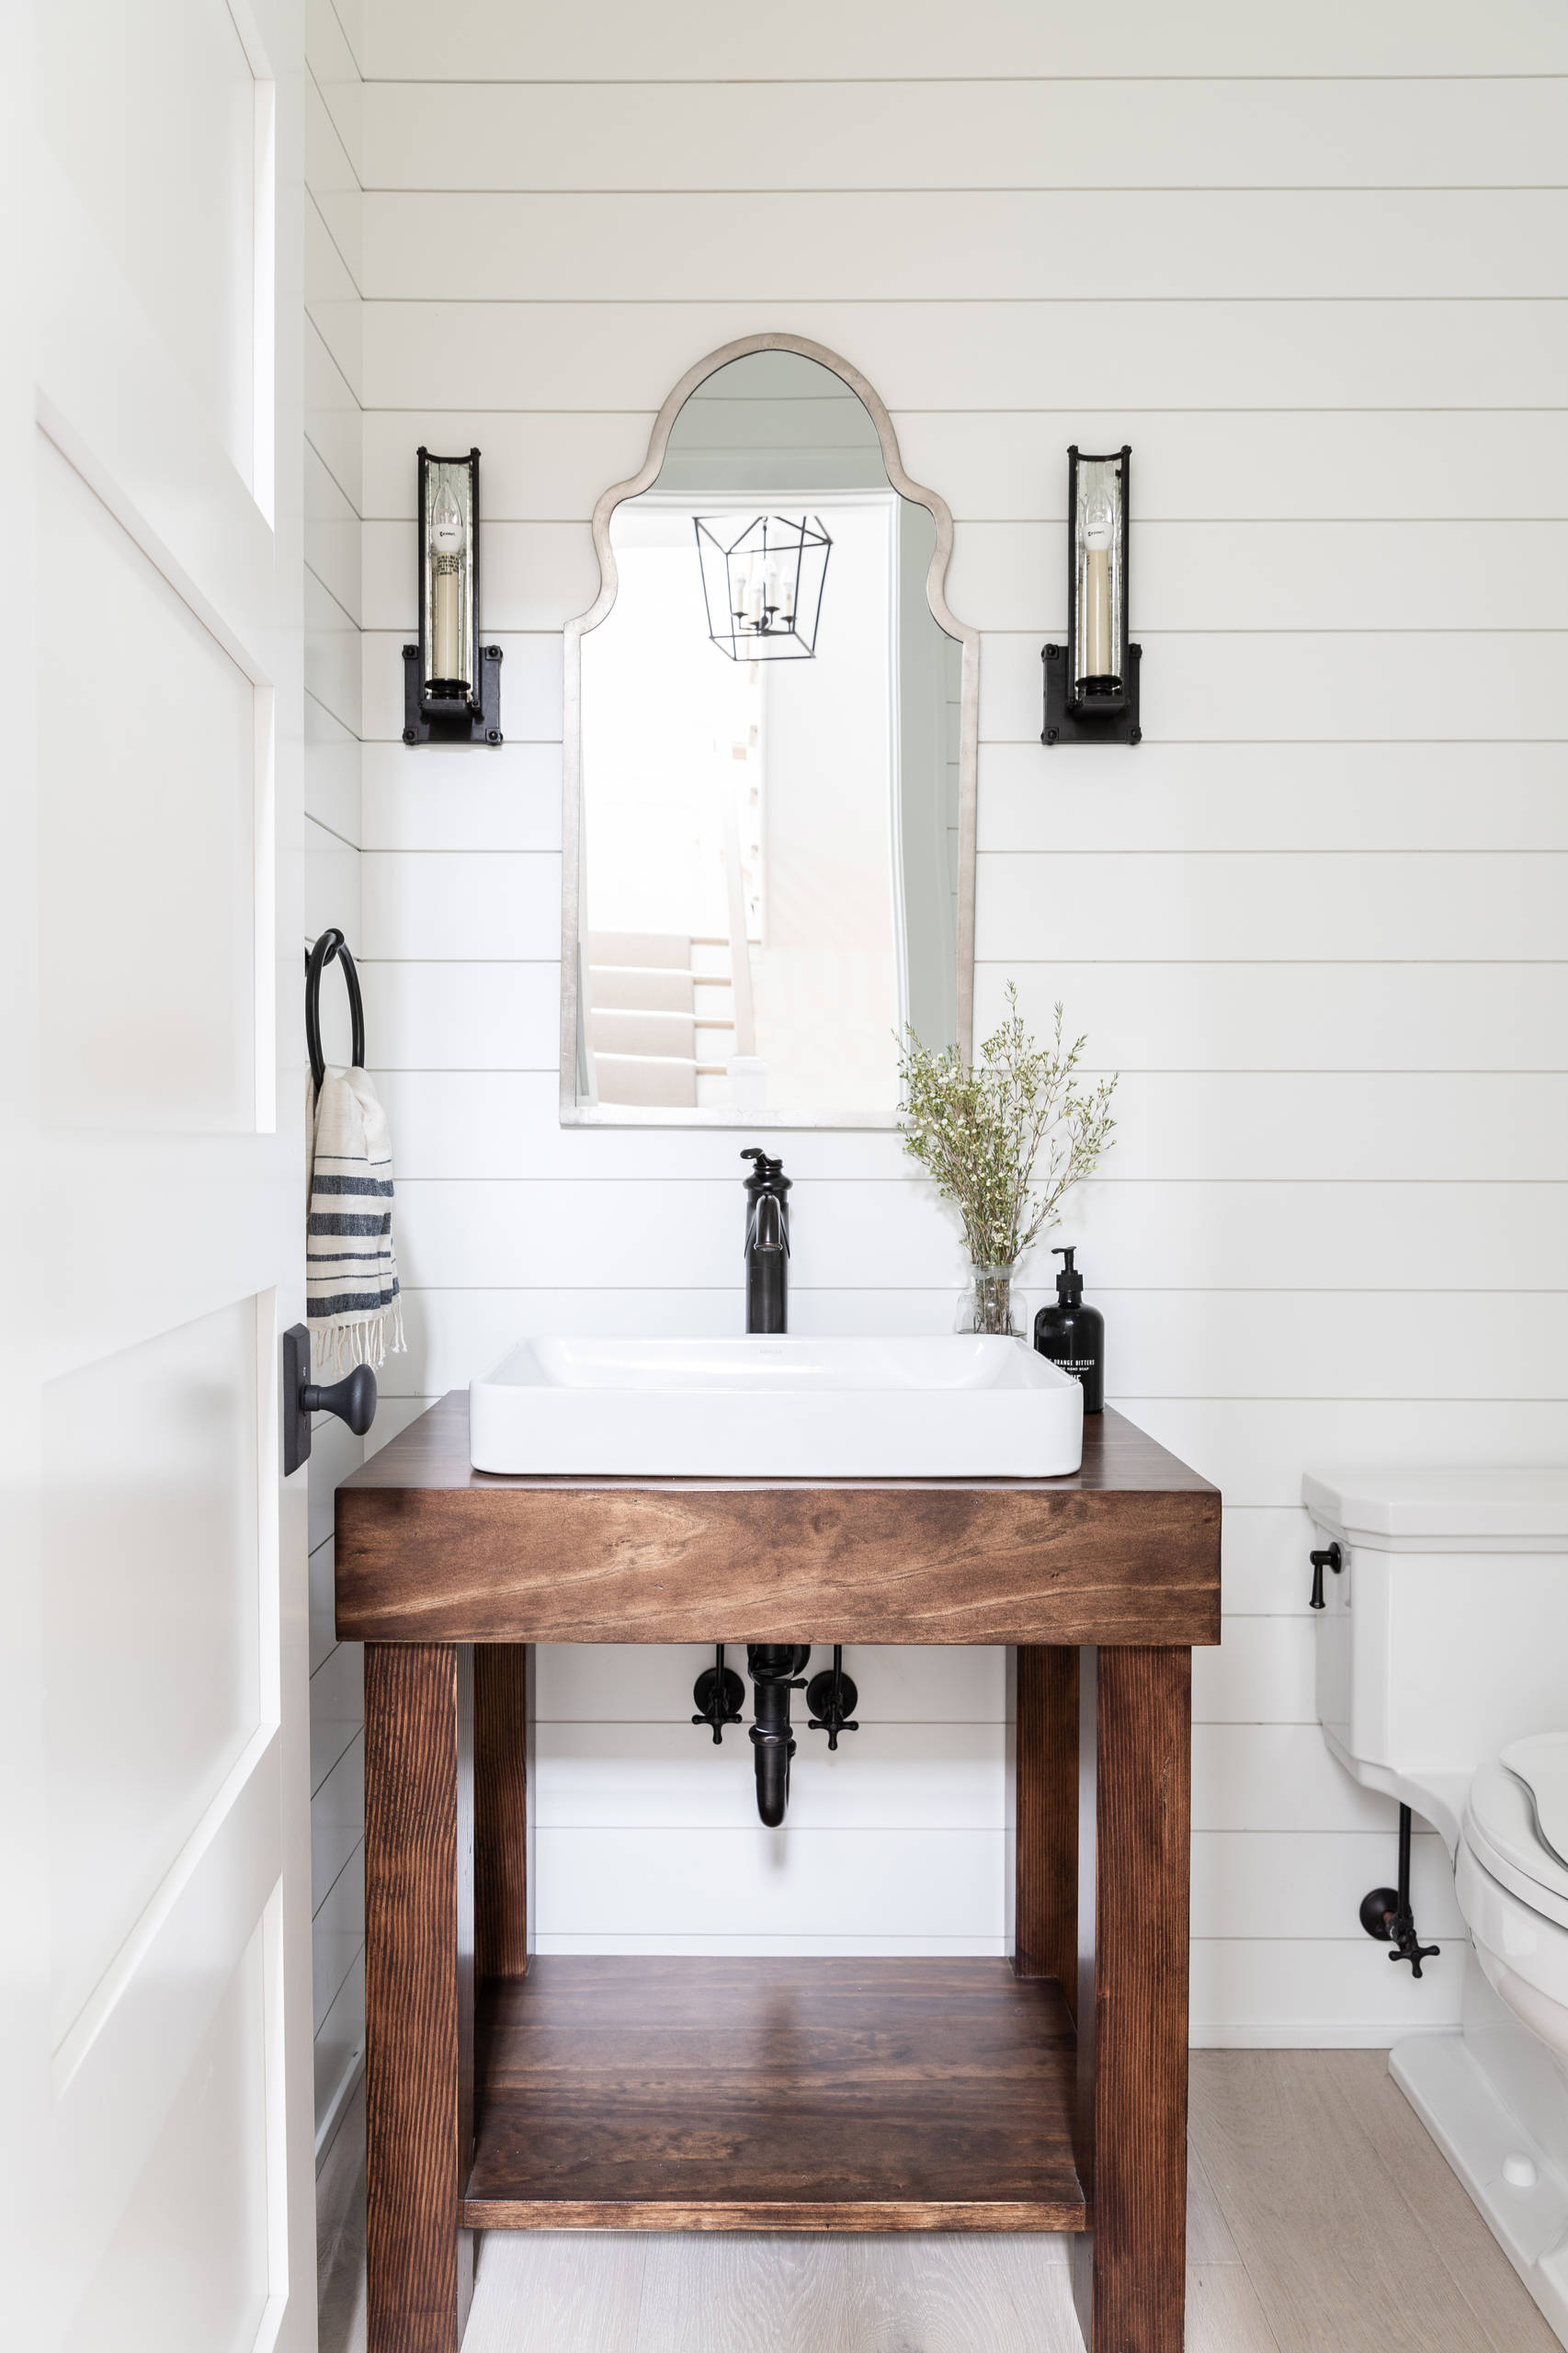 75 Beautiful Powder Room Pictures Ideas January 2021 Houzz